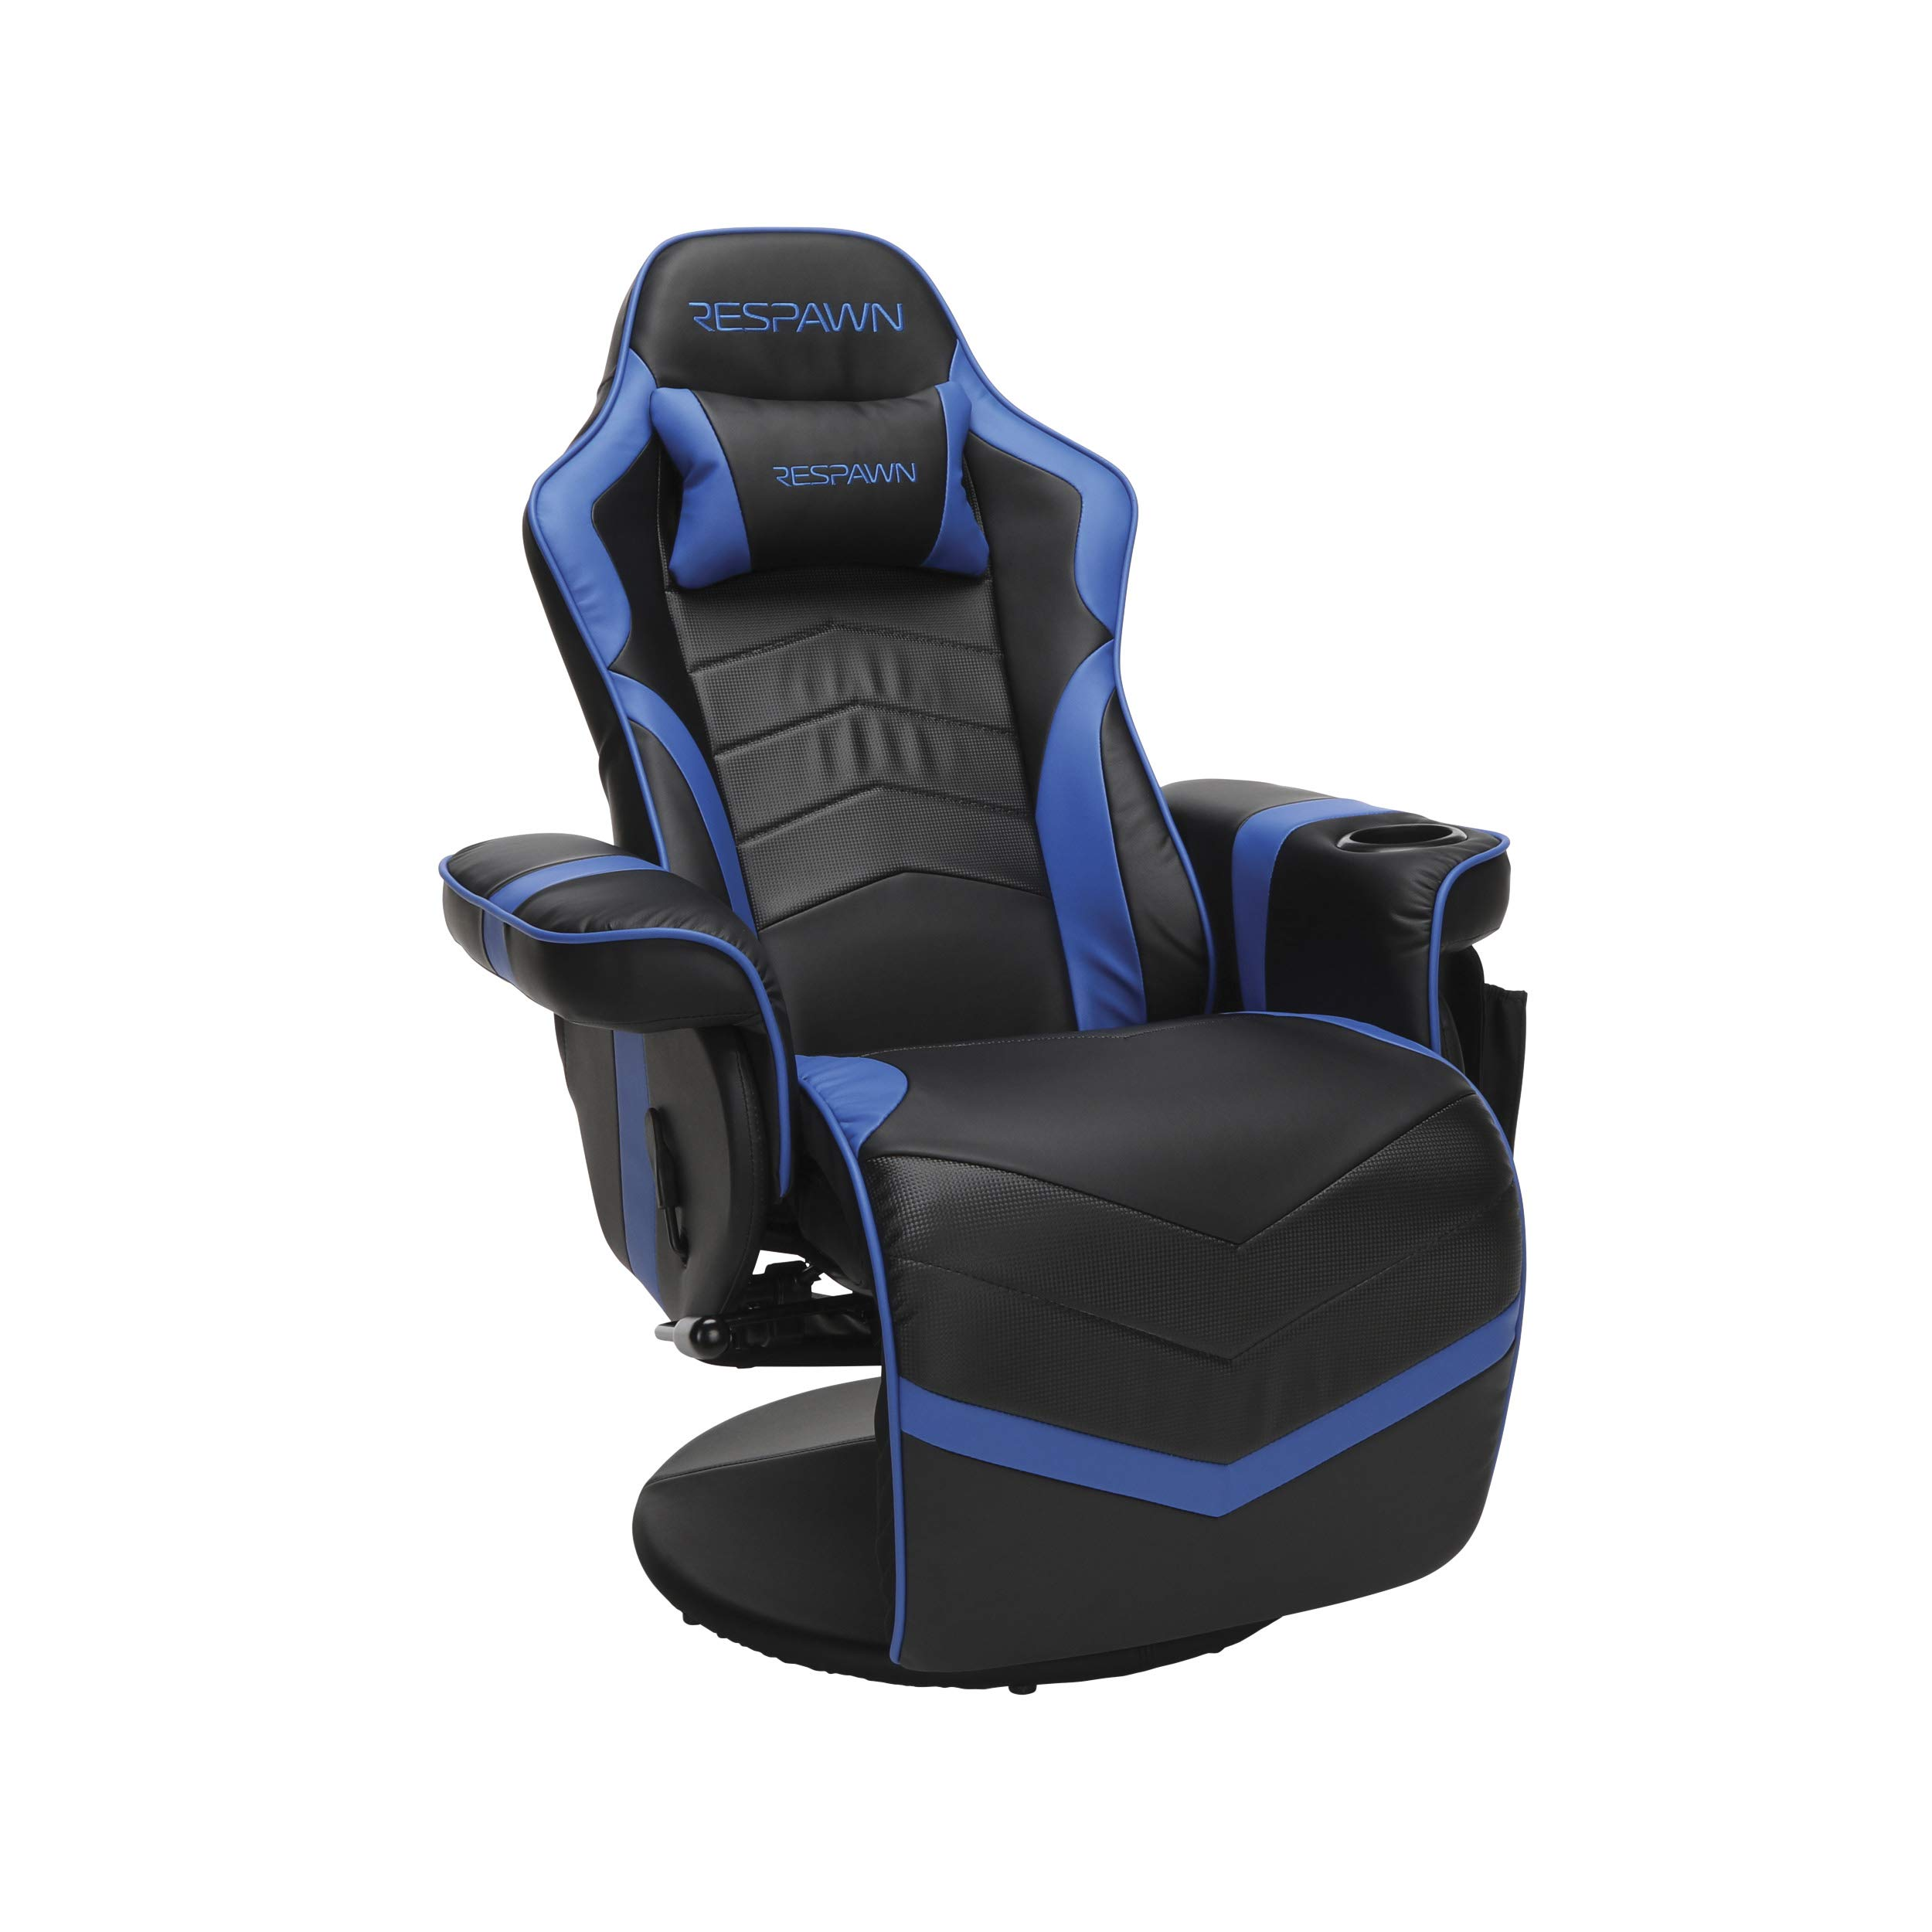 RESPAWN-900 Racing Style Gaming Recliner, Reclining Gaming Chair, in Blue by RESPAWN